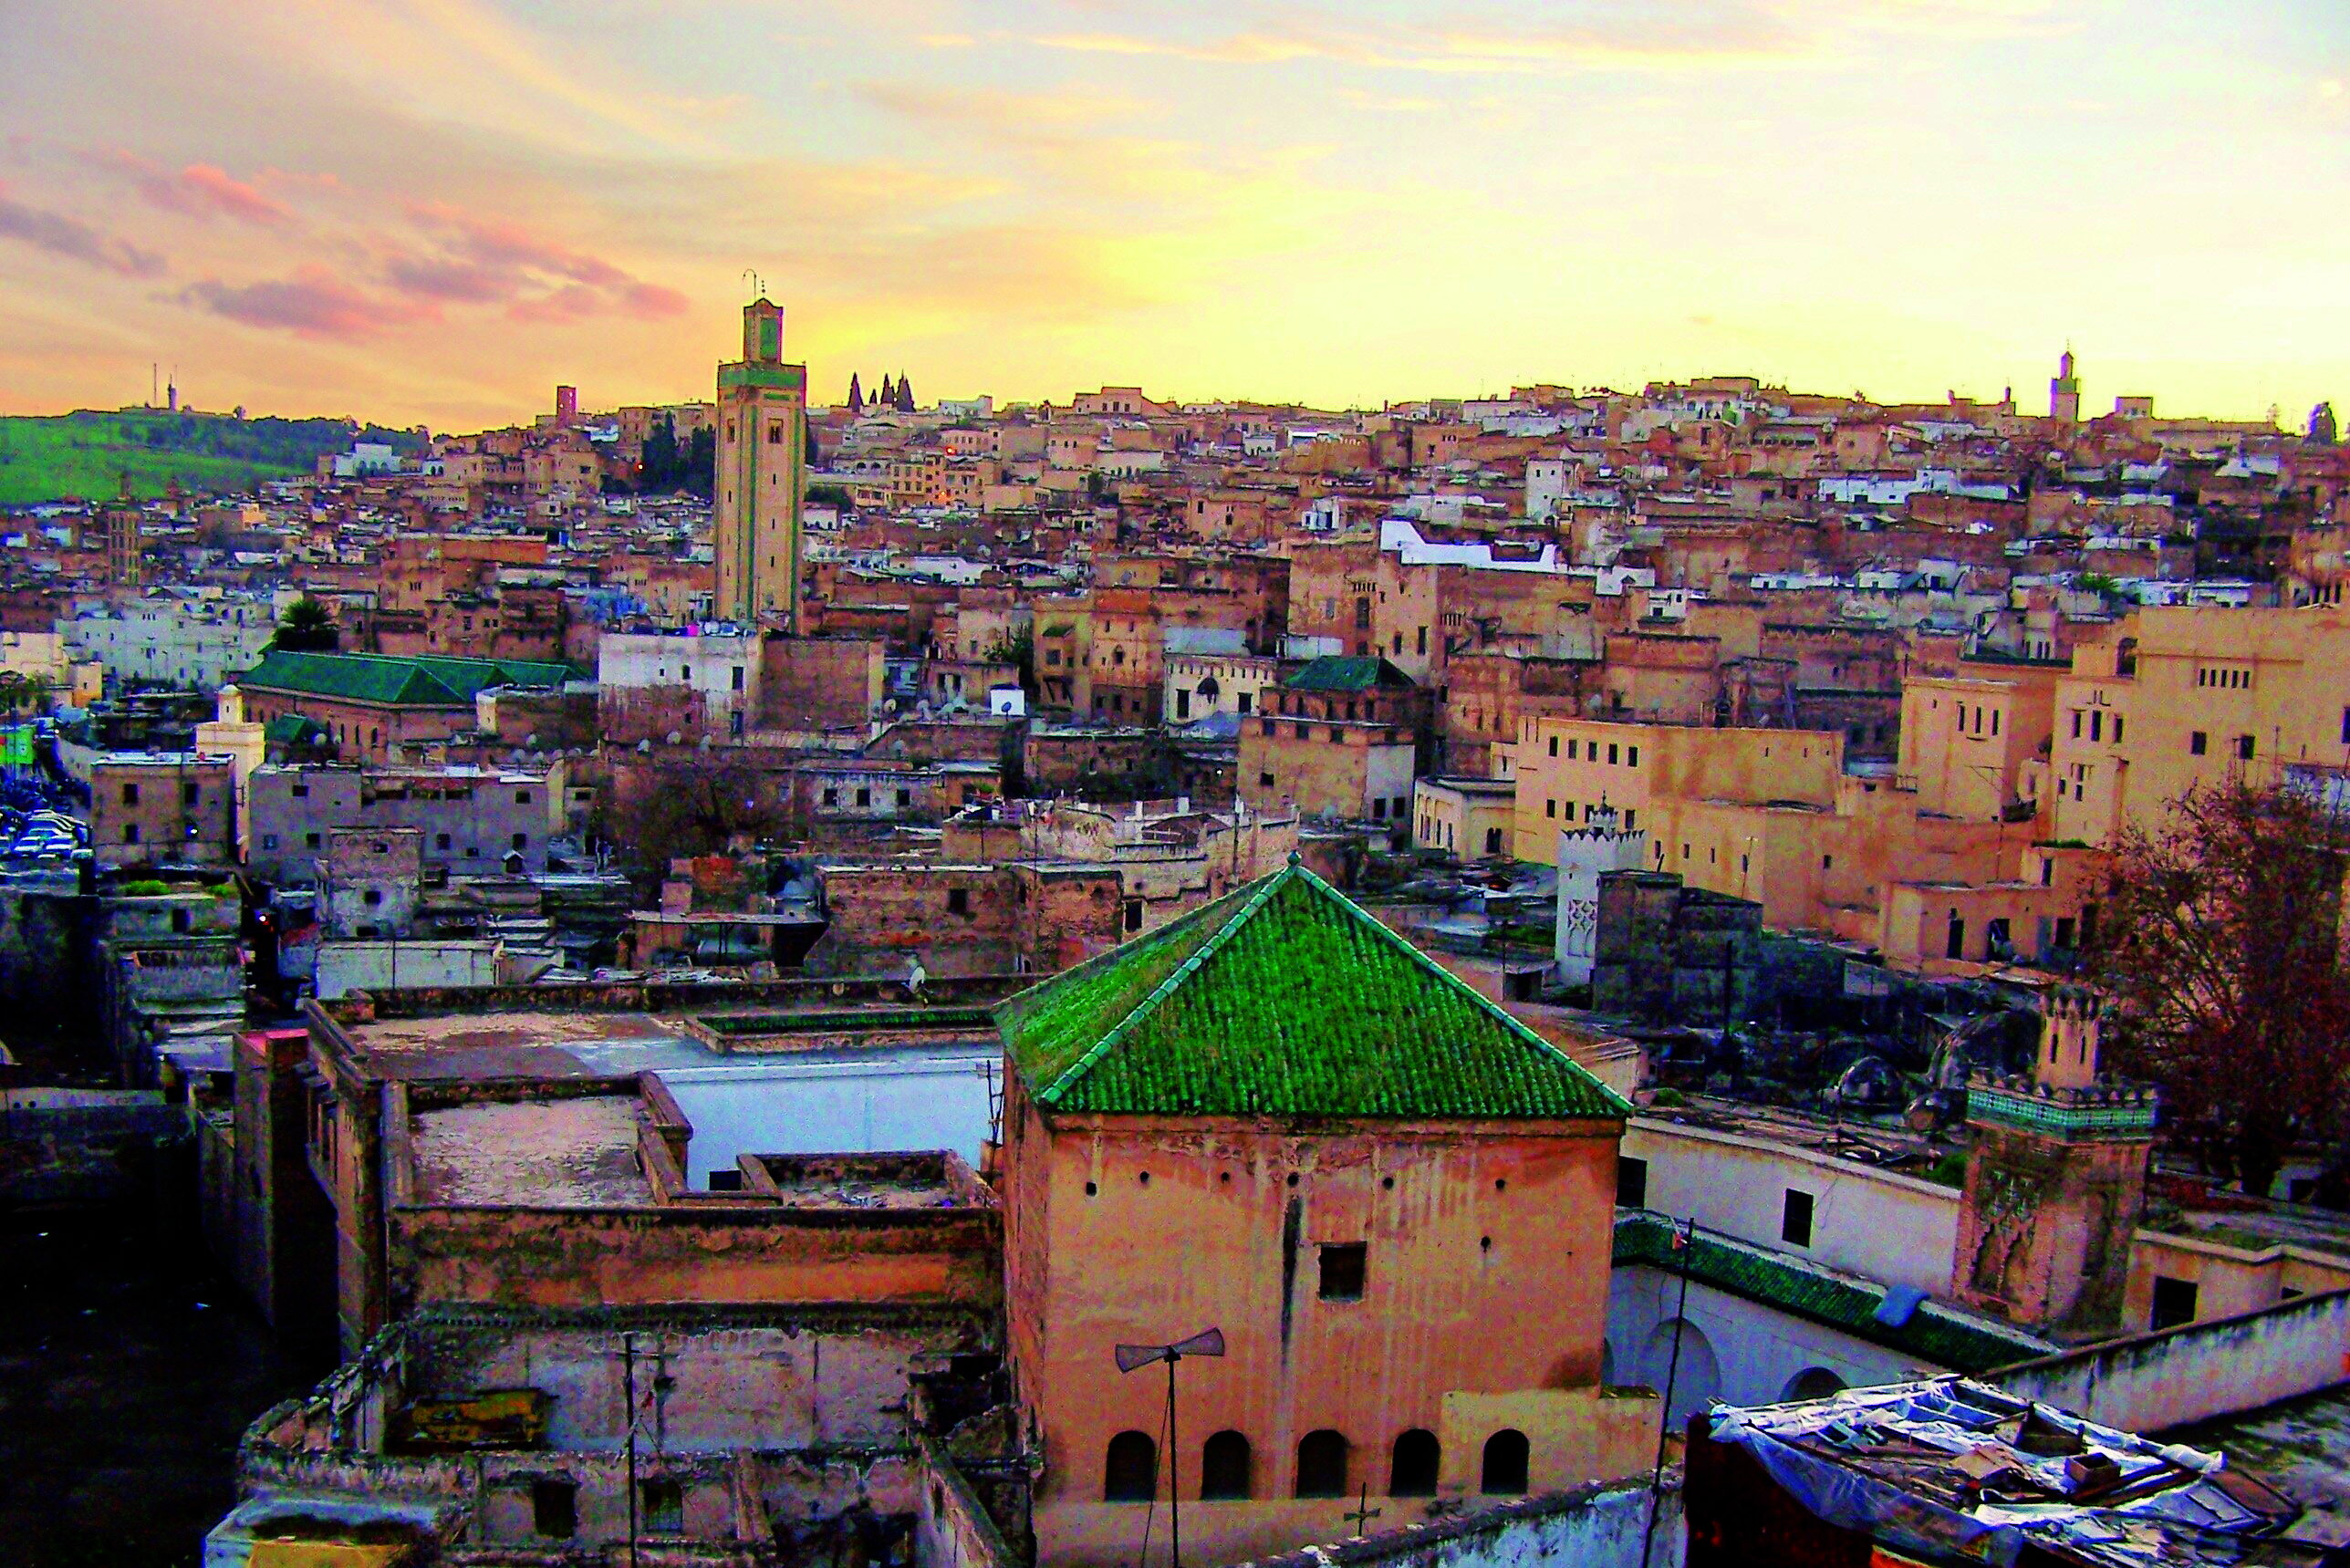 Res: 2576x1719, Morocco Pictures Wallpapers Download #4XJ18LN